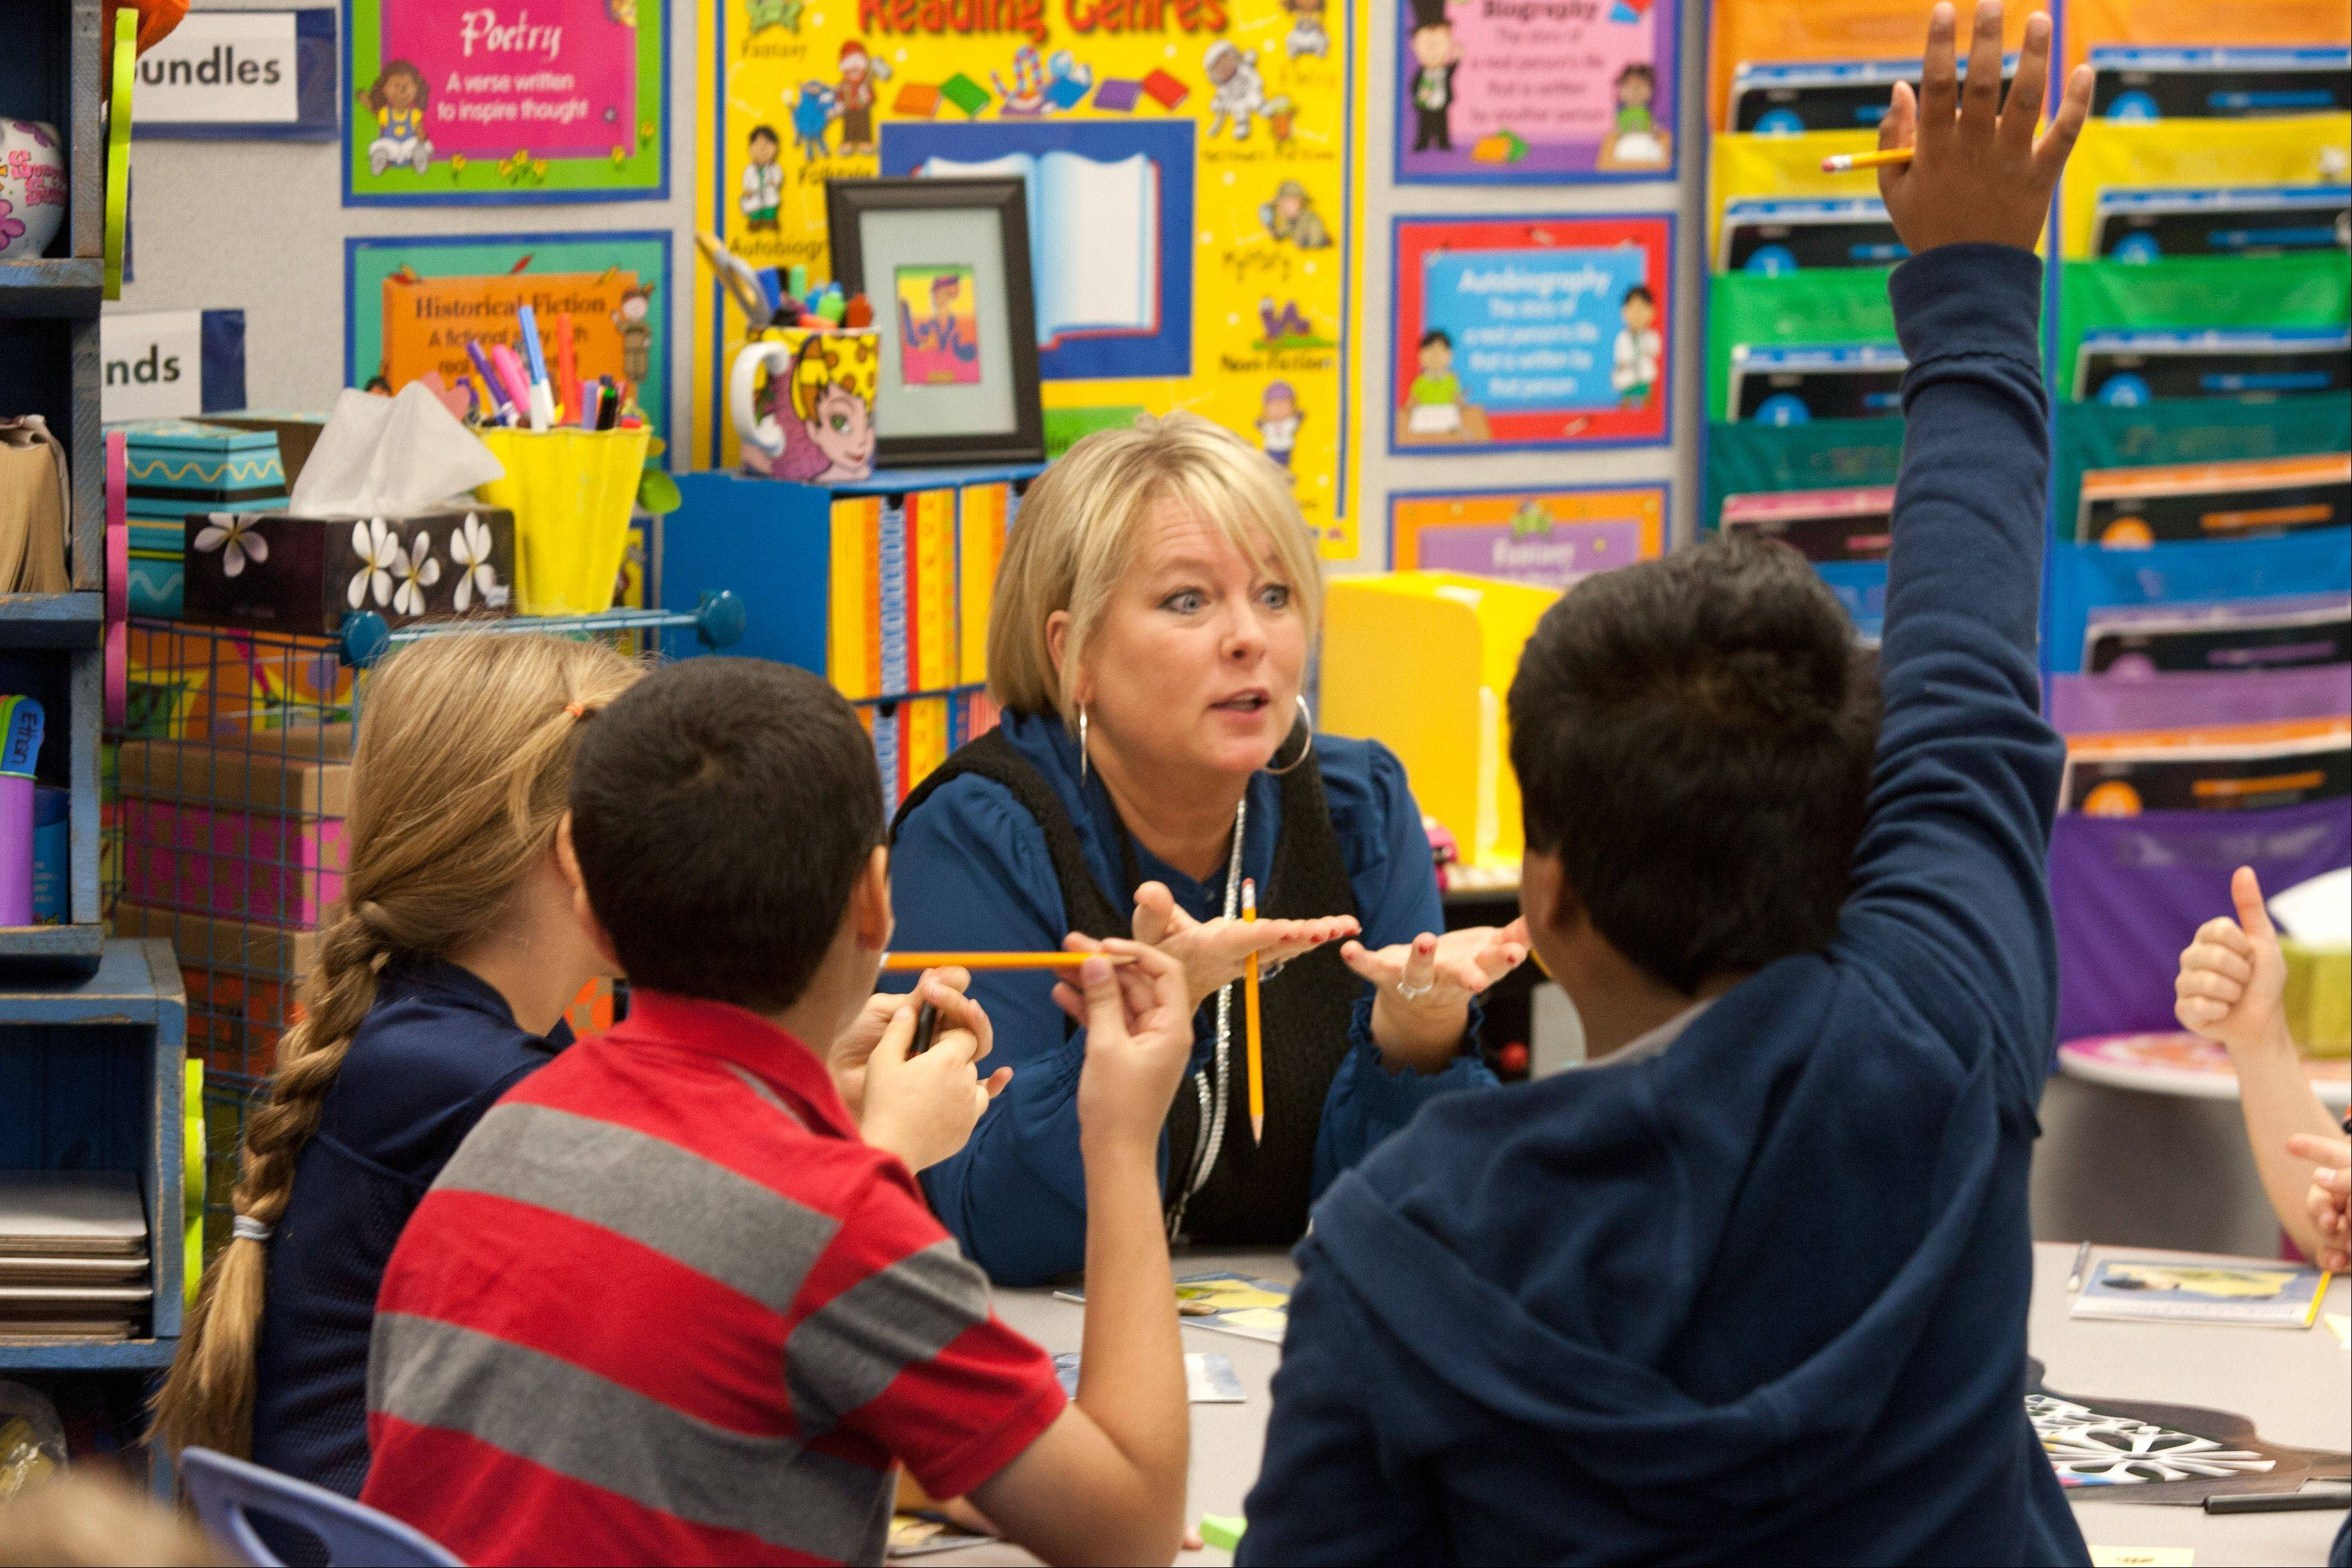 Third-grade teacher Elizabeth Sompolski works with a small group of students at Brook Forest Elementary in Oak Brook. Brook Forest saw one of the smallest decreases in DuPage County in students who meet or exceed testing standards, despite the state's move to increase the cutoff scores necessary to qualify as meeting or exceeding.